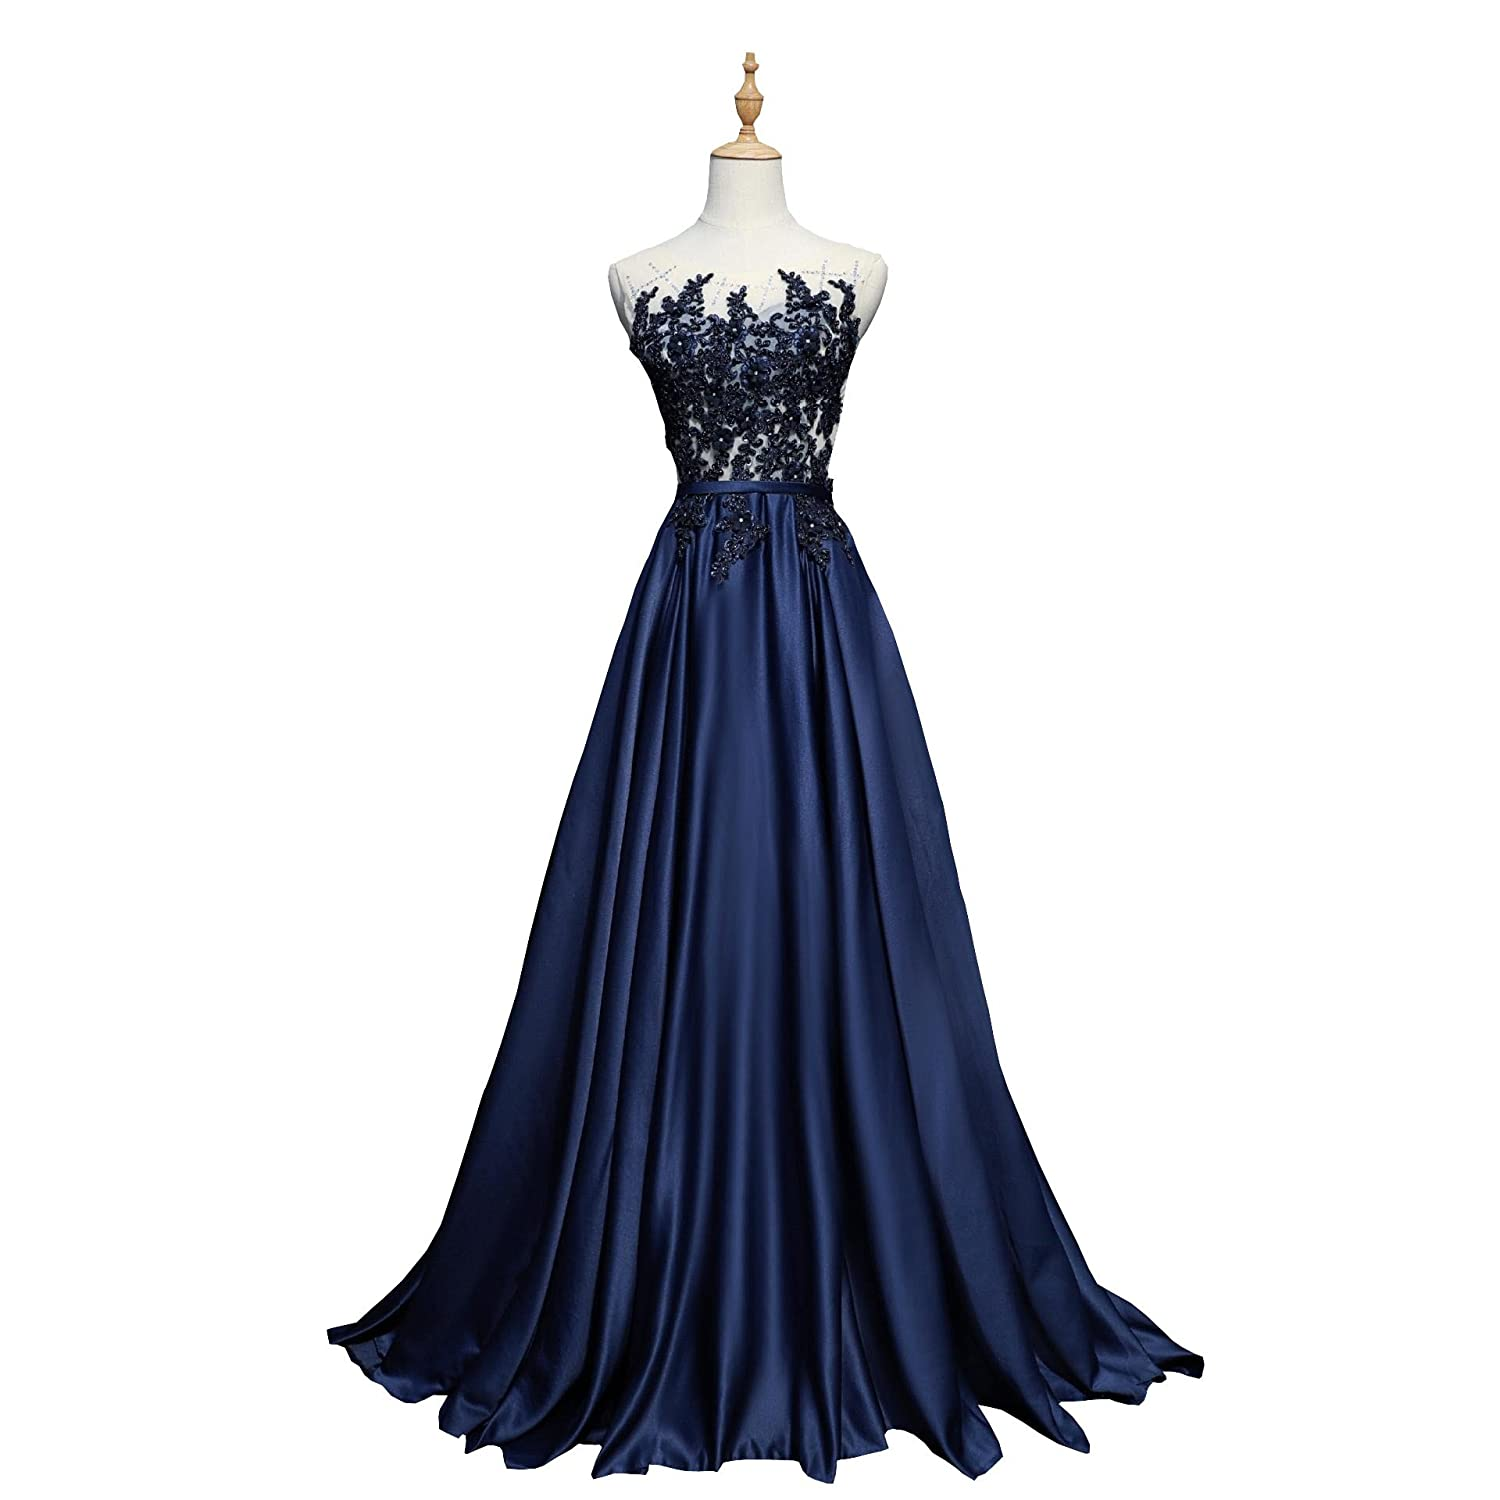 Bride Wedding Dress Navy Blue Silk Pearl Embroidery Perspective